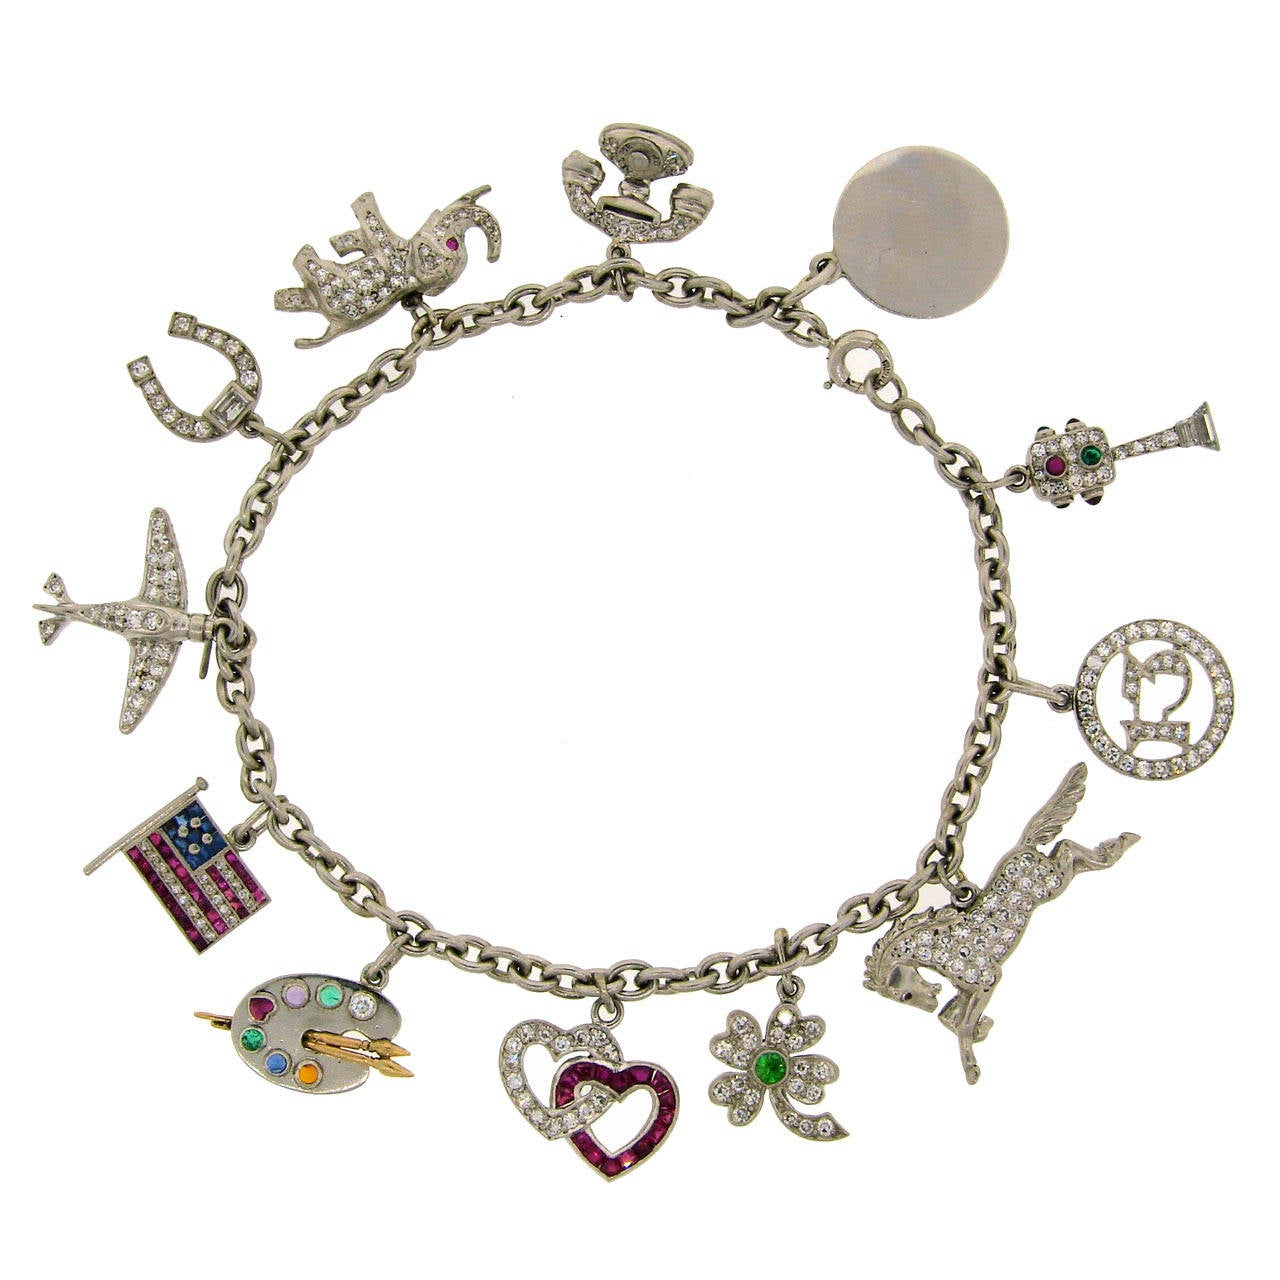 1920s Tiffany Co Art Deco Gems And Platinum Charm Bracelet For